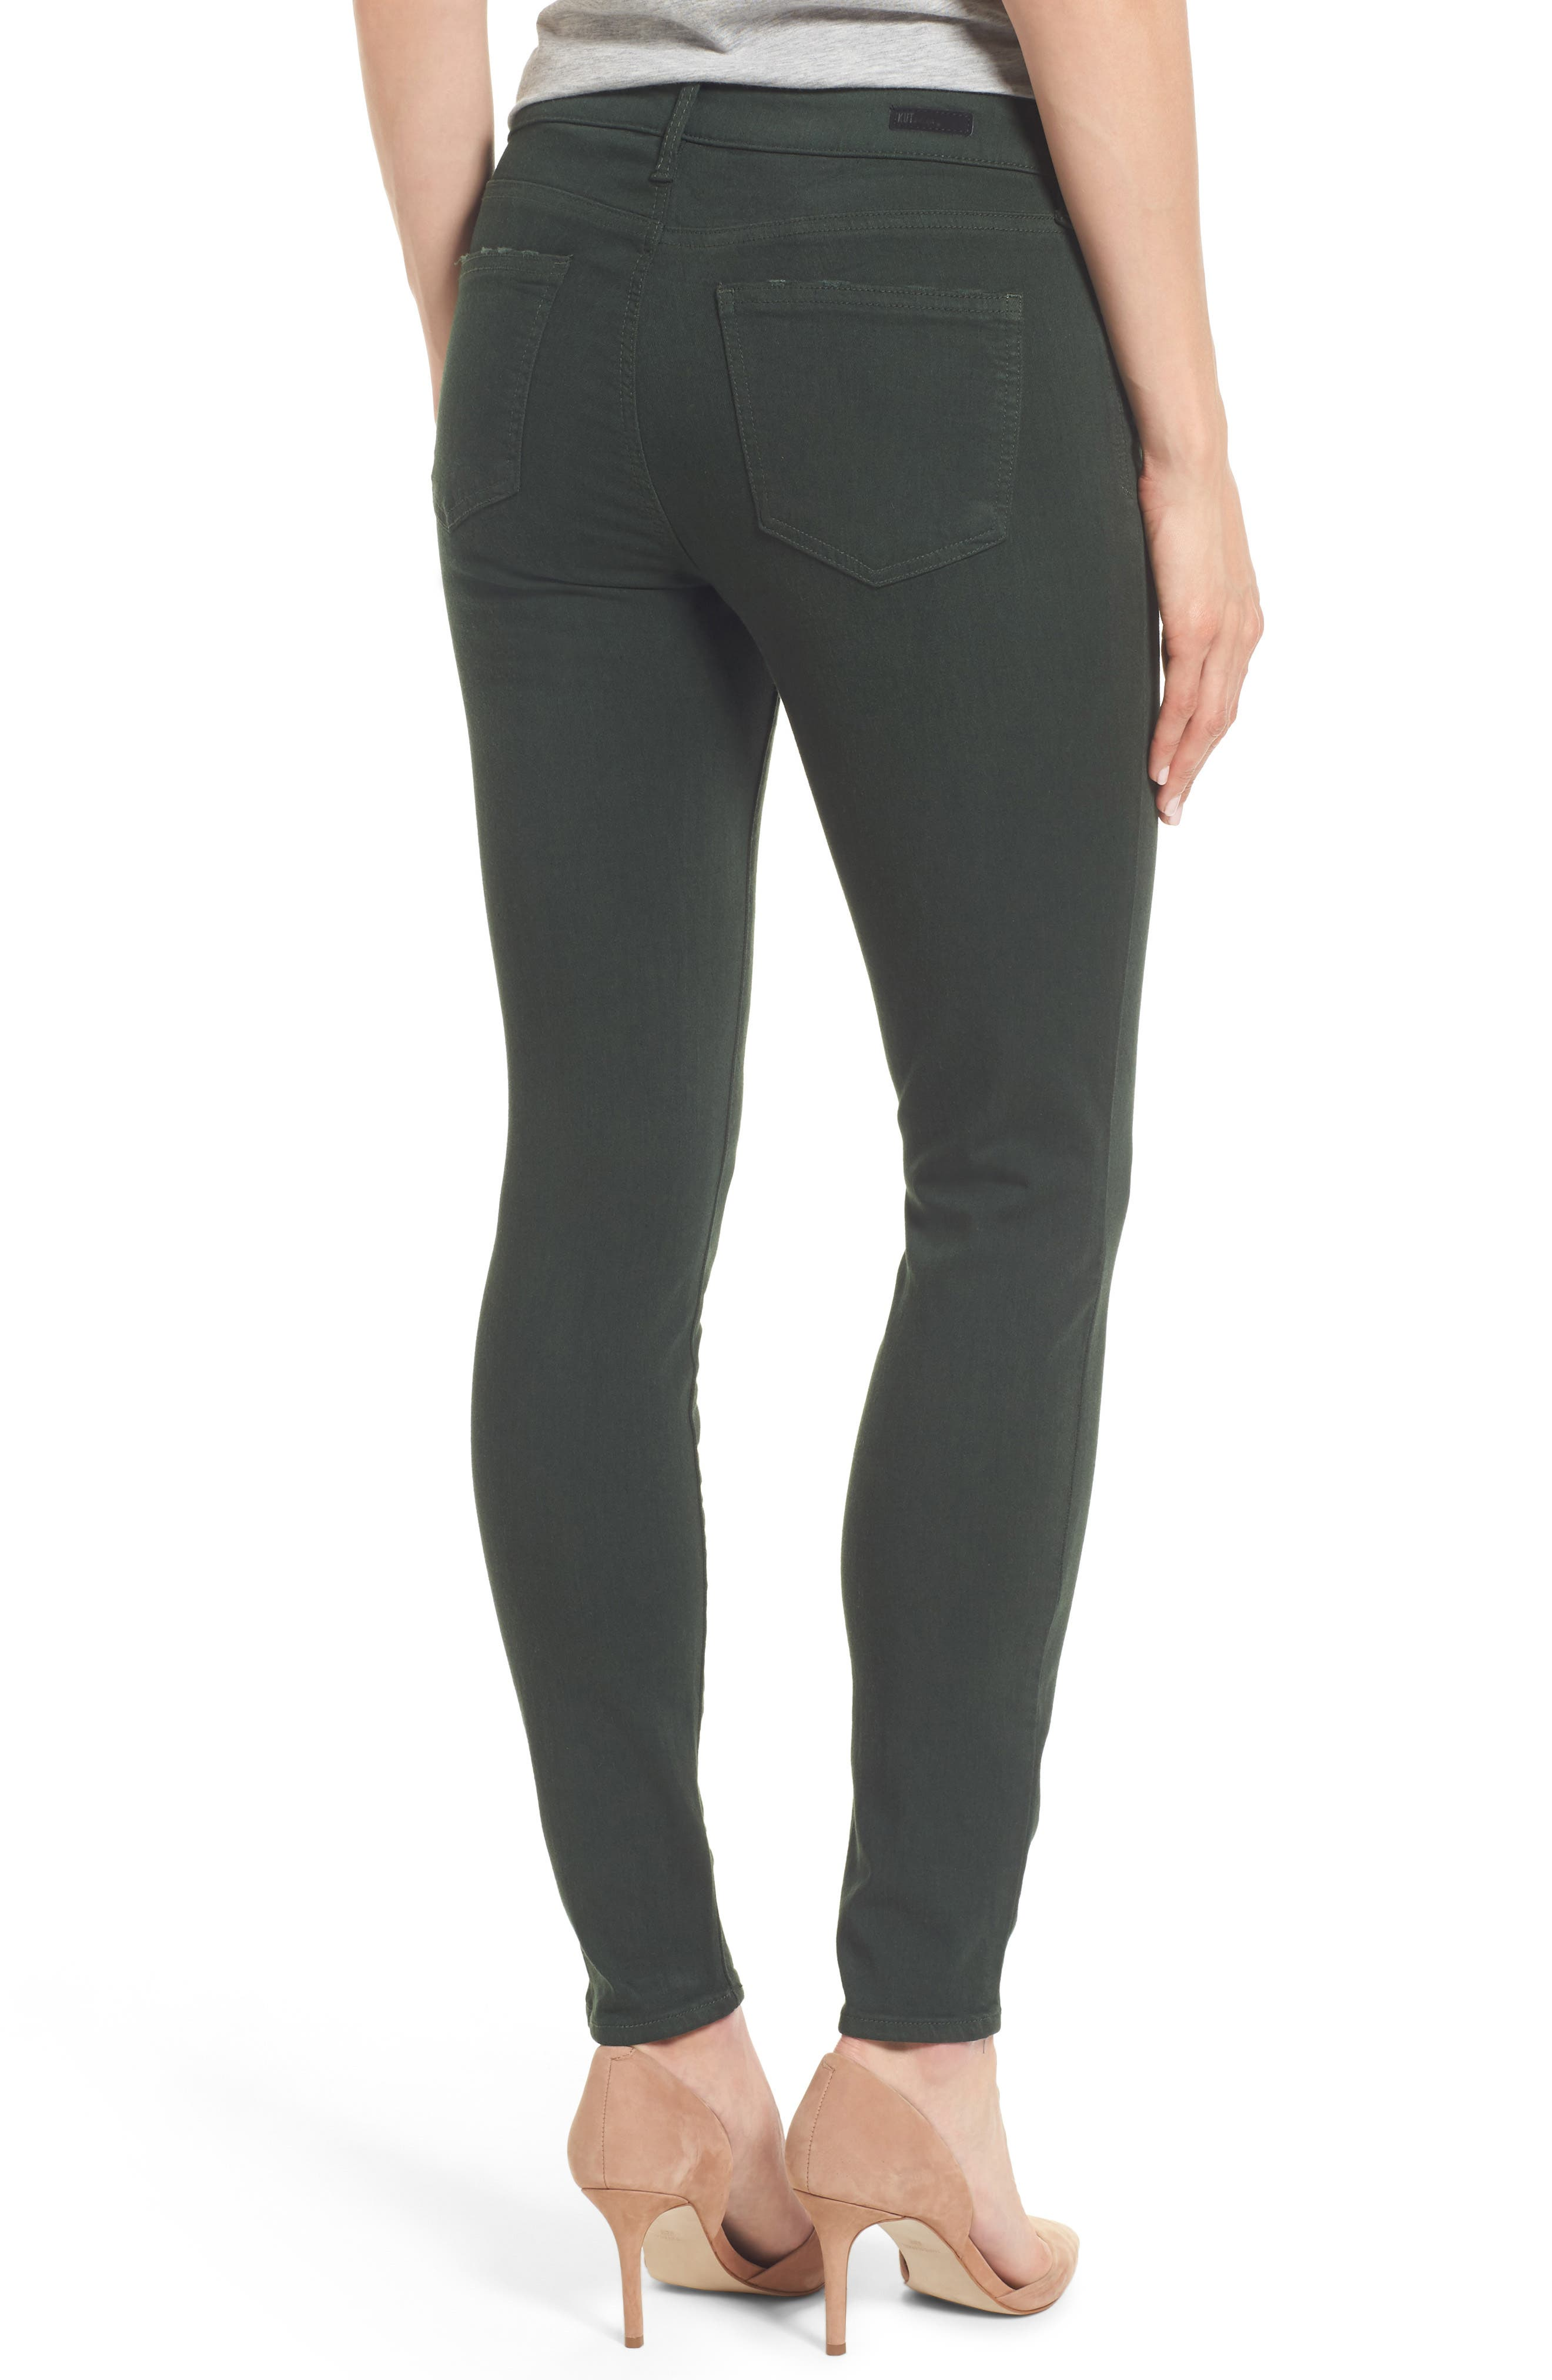 Mia Ankle Skinny Jeans,                             Alternate thumbnail 2, color,                             350